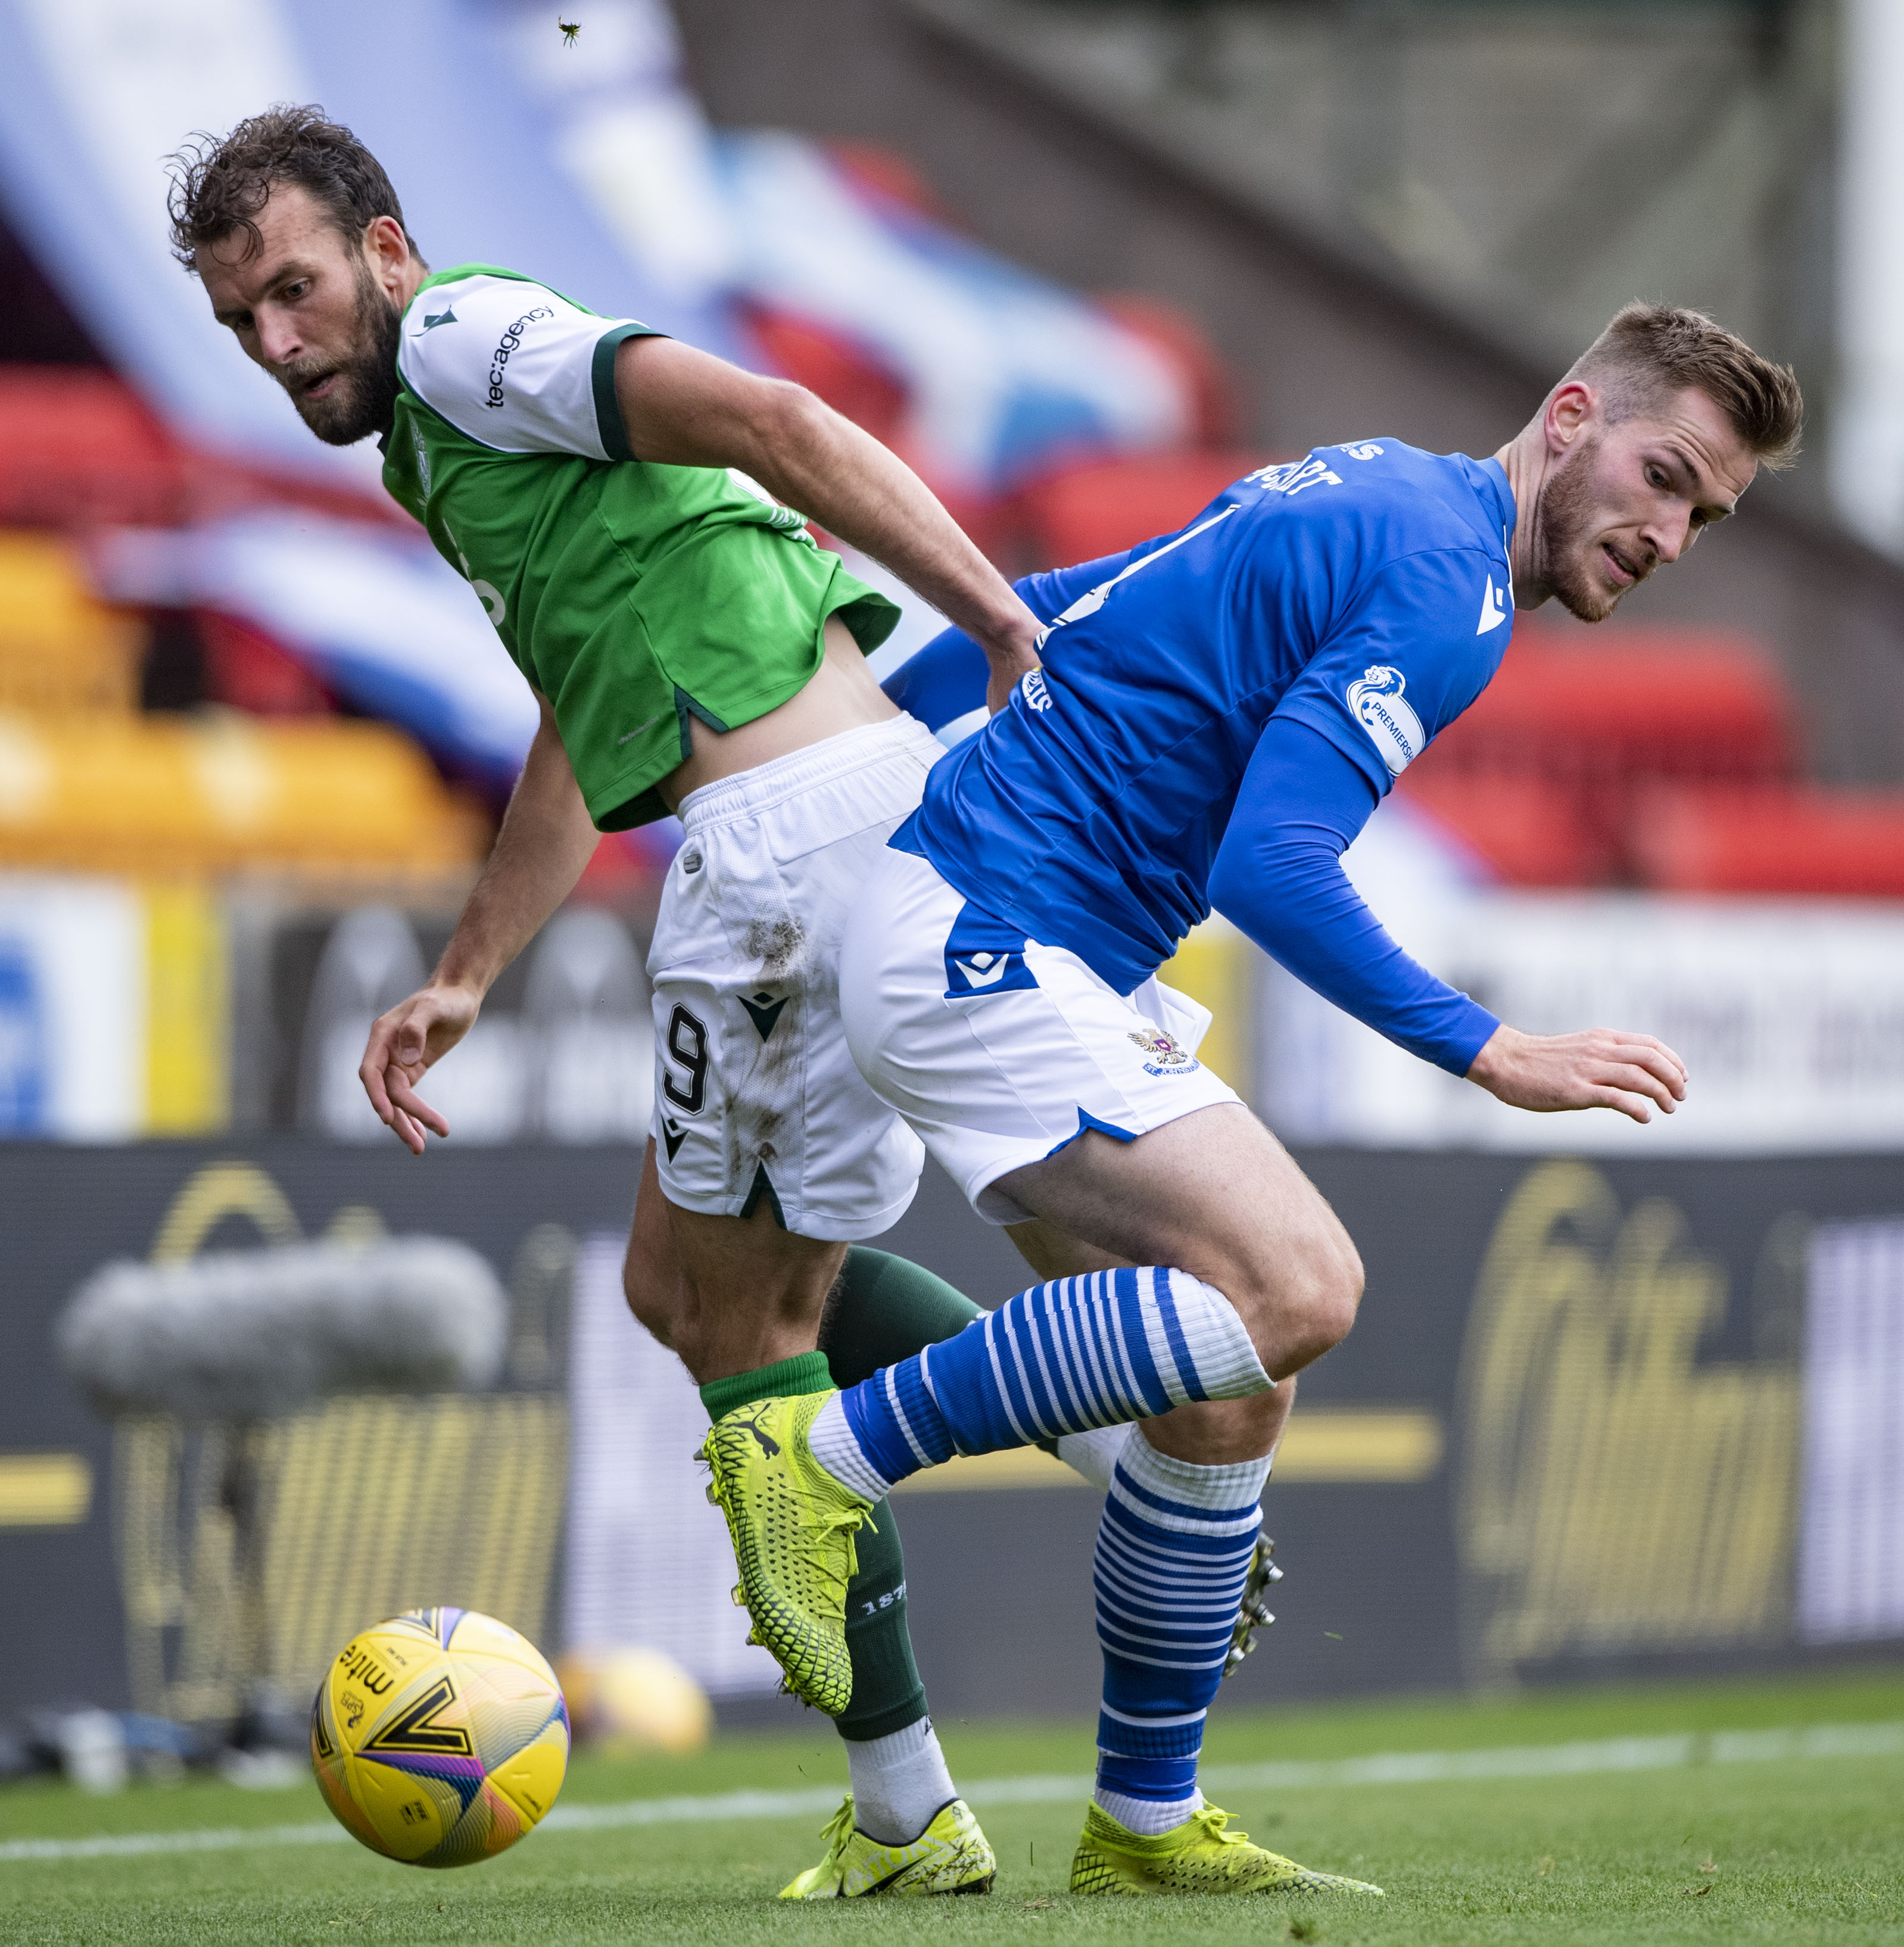 PERTH, SCOTLAND - AUGUST 23: Hibernian's Christian Doidge (left) competes with Jamie McCart during the Scottish Premiership match between St Johnstone and Hibernian at McDiarmid Park, on August 23, 2020, in Perth, Scotland. (Photo by Bill Murray / SNS Group via Getty Images)